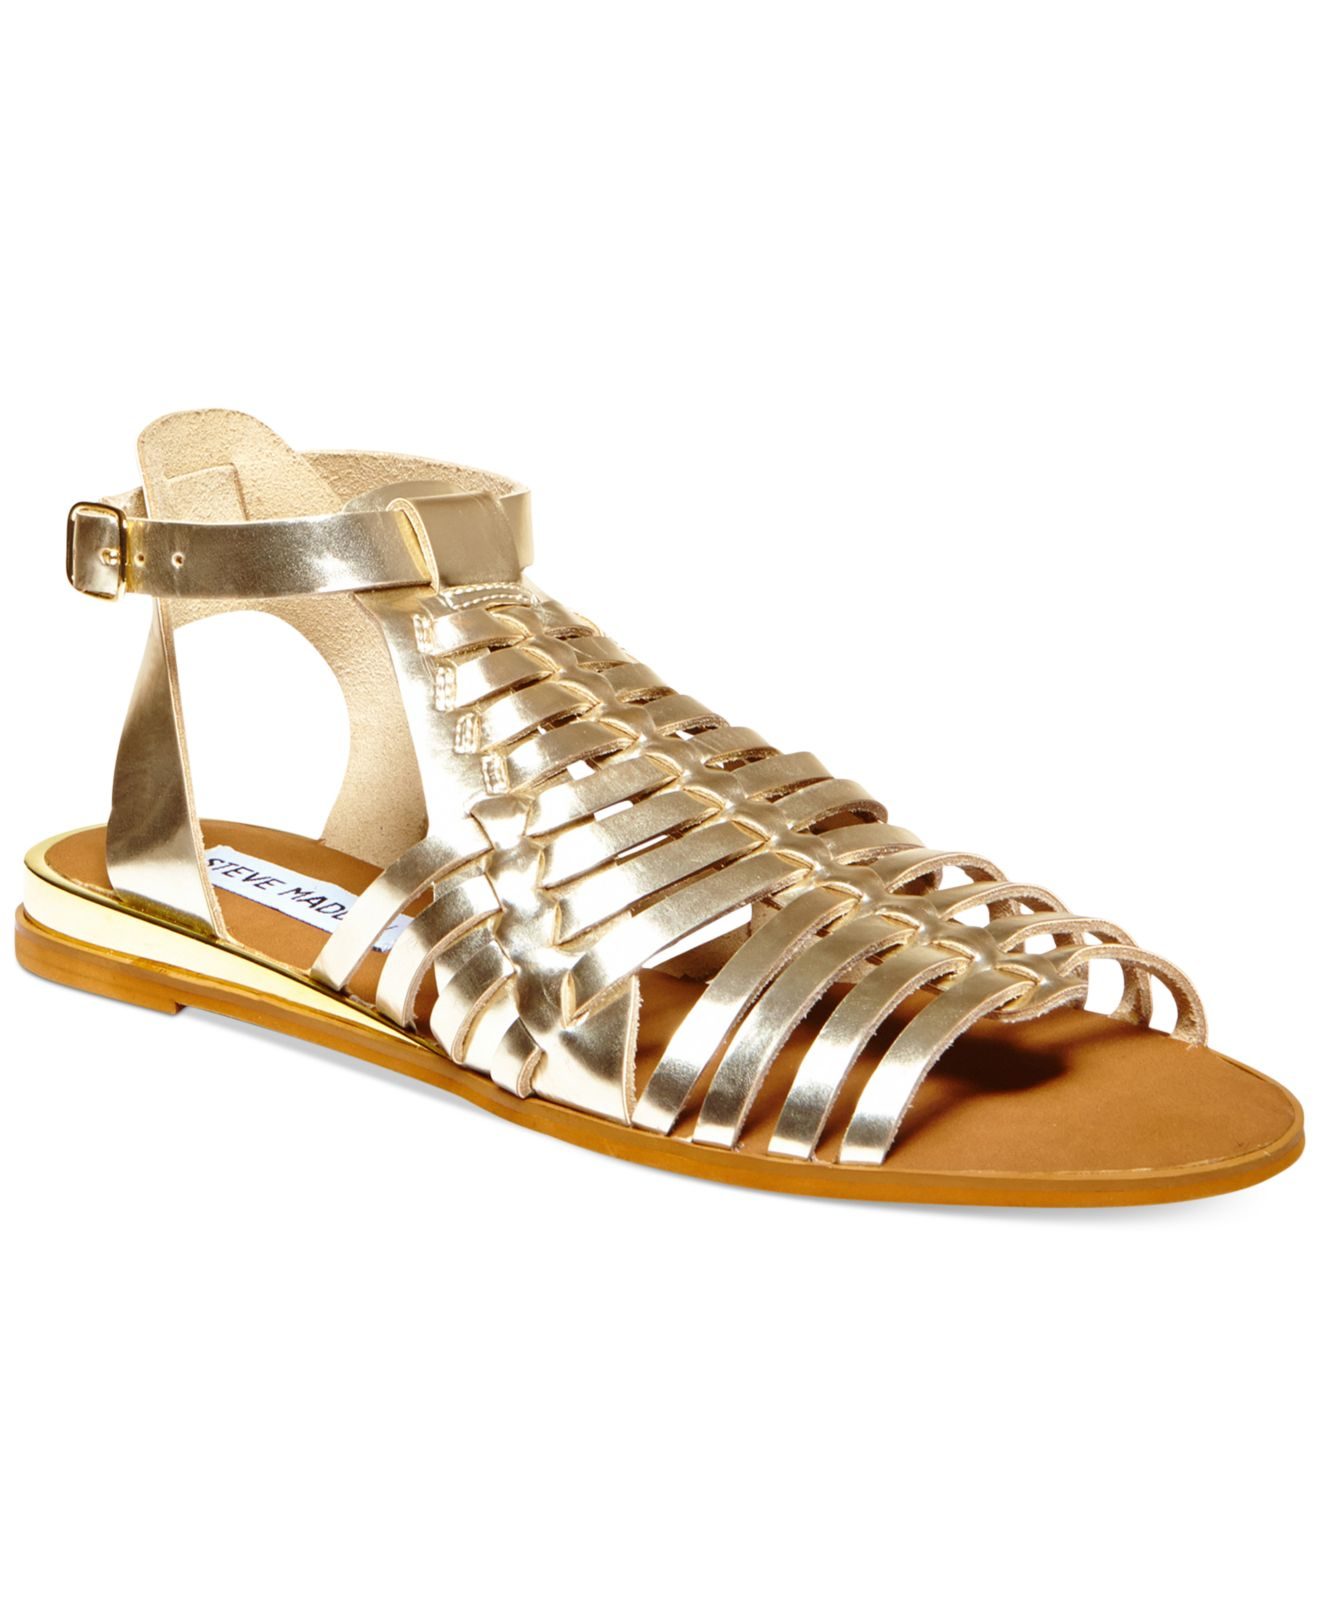 cdfe6e6c6 Lyst - Steve Madden Women s Comely Flat Gladiator Sandals in Metallic